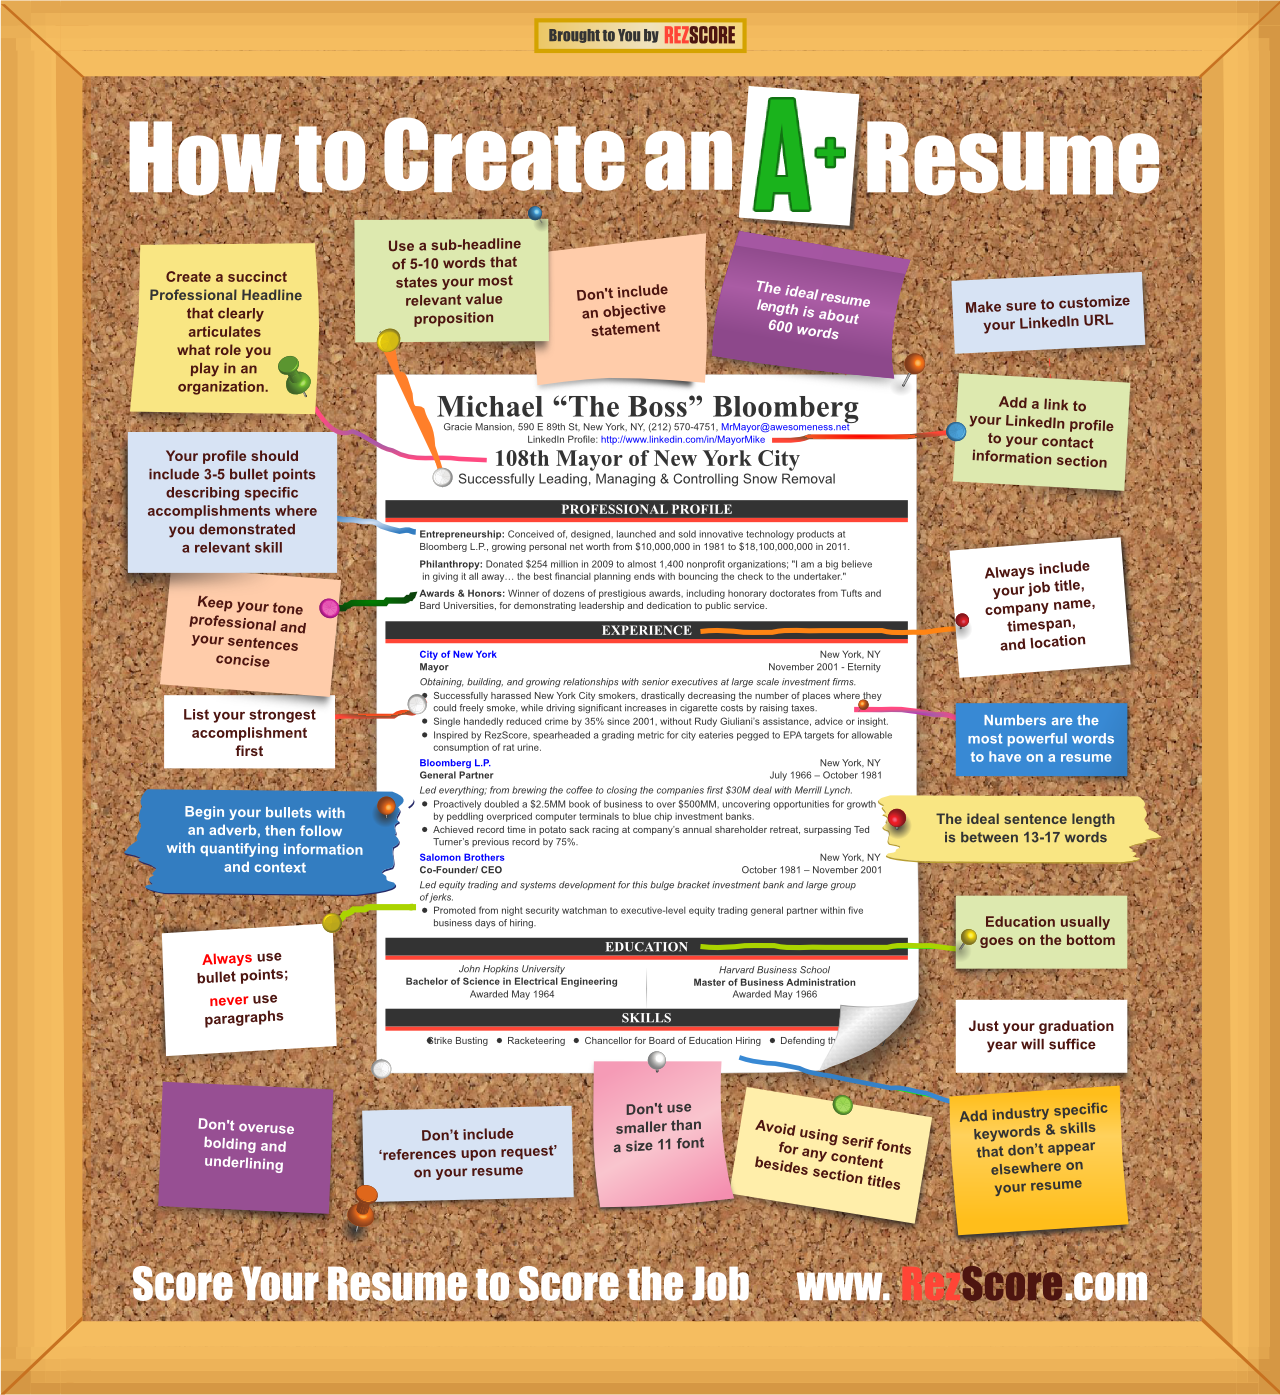 how to create an a resume originally pinned by career development at angelo state university most of this advice is on target